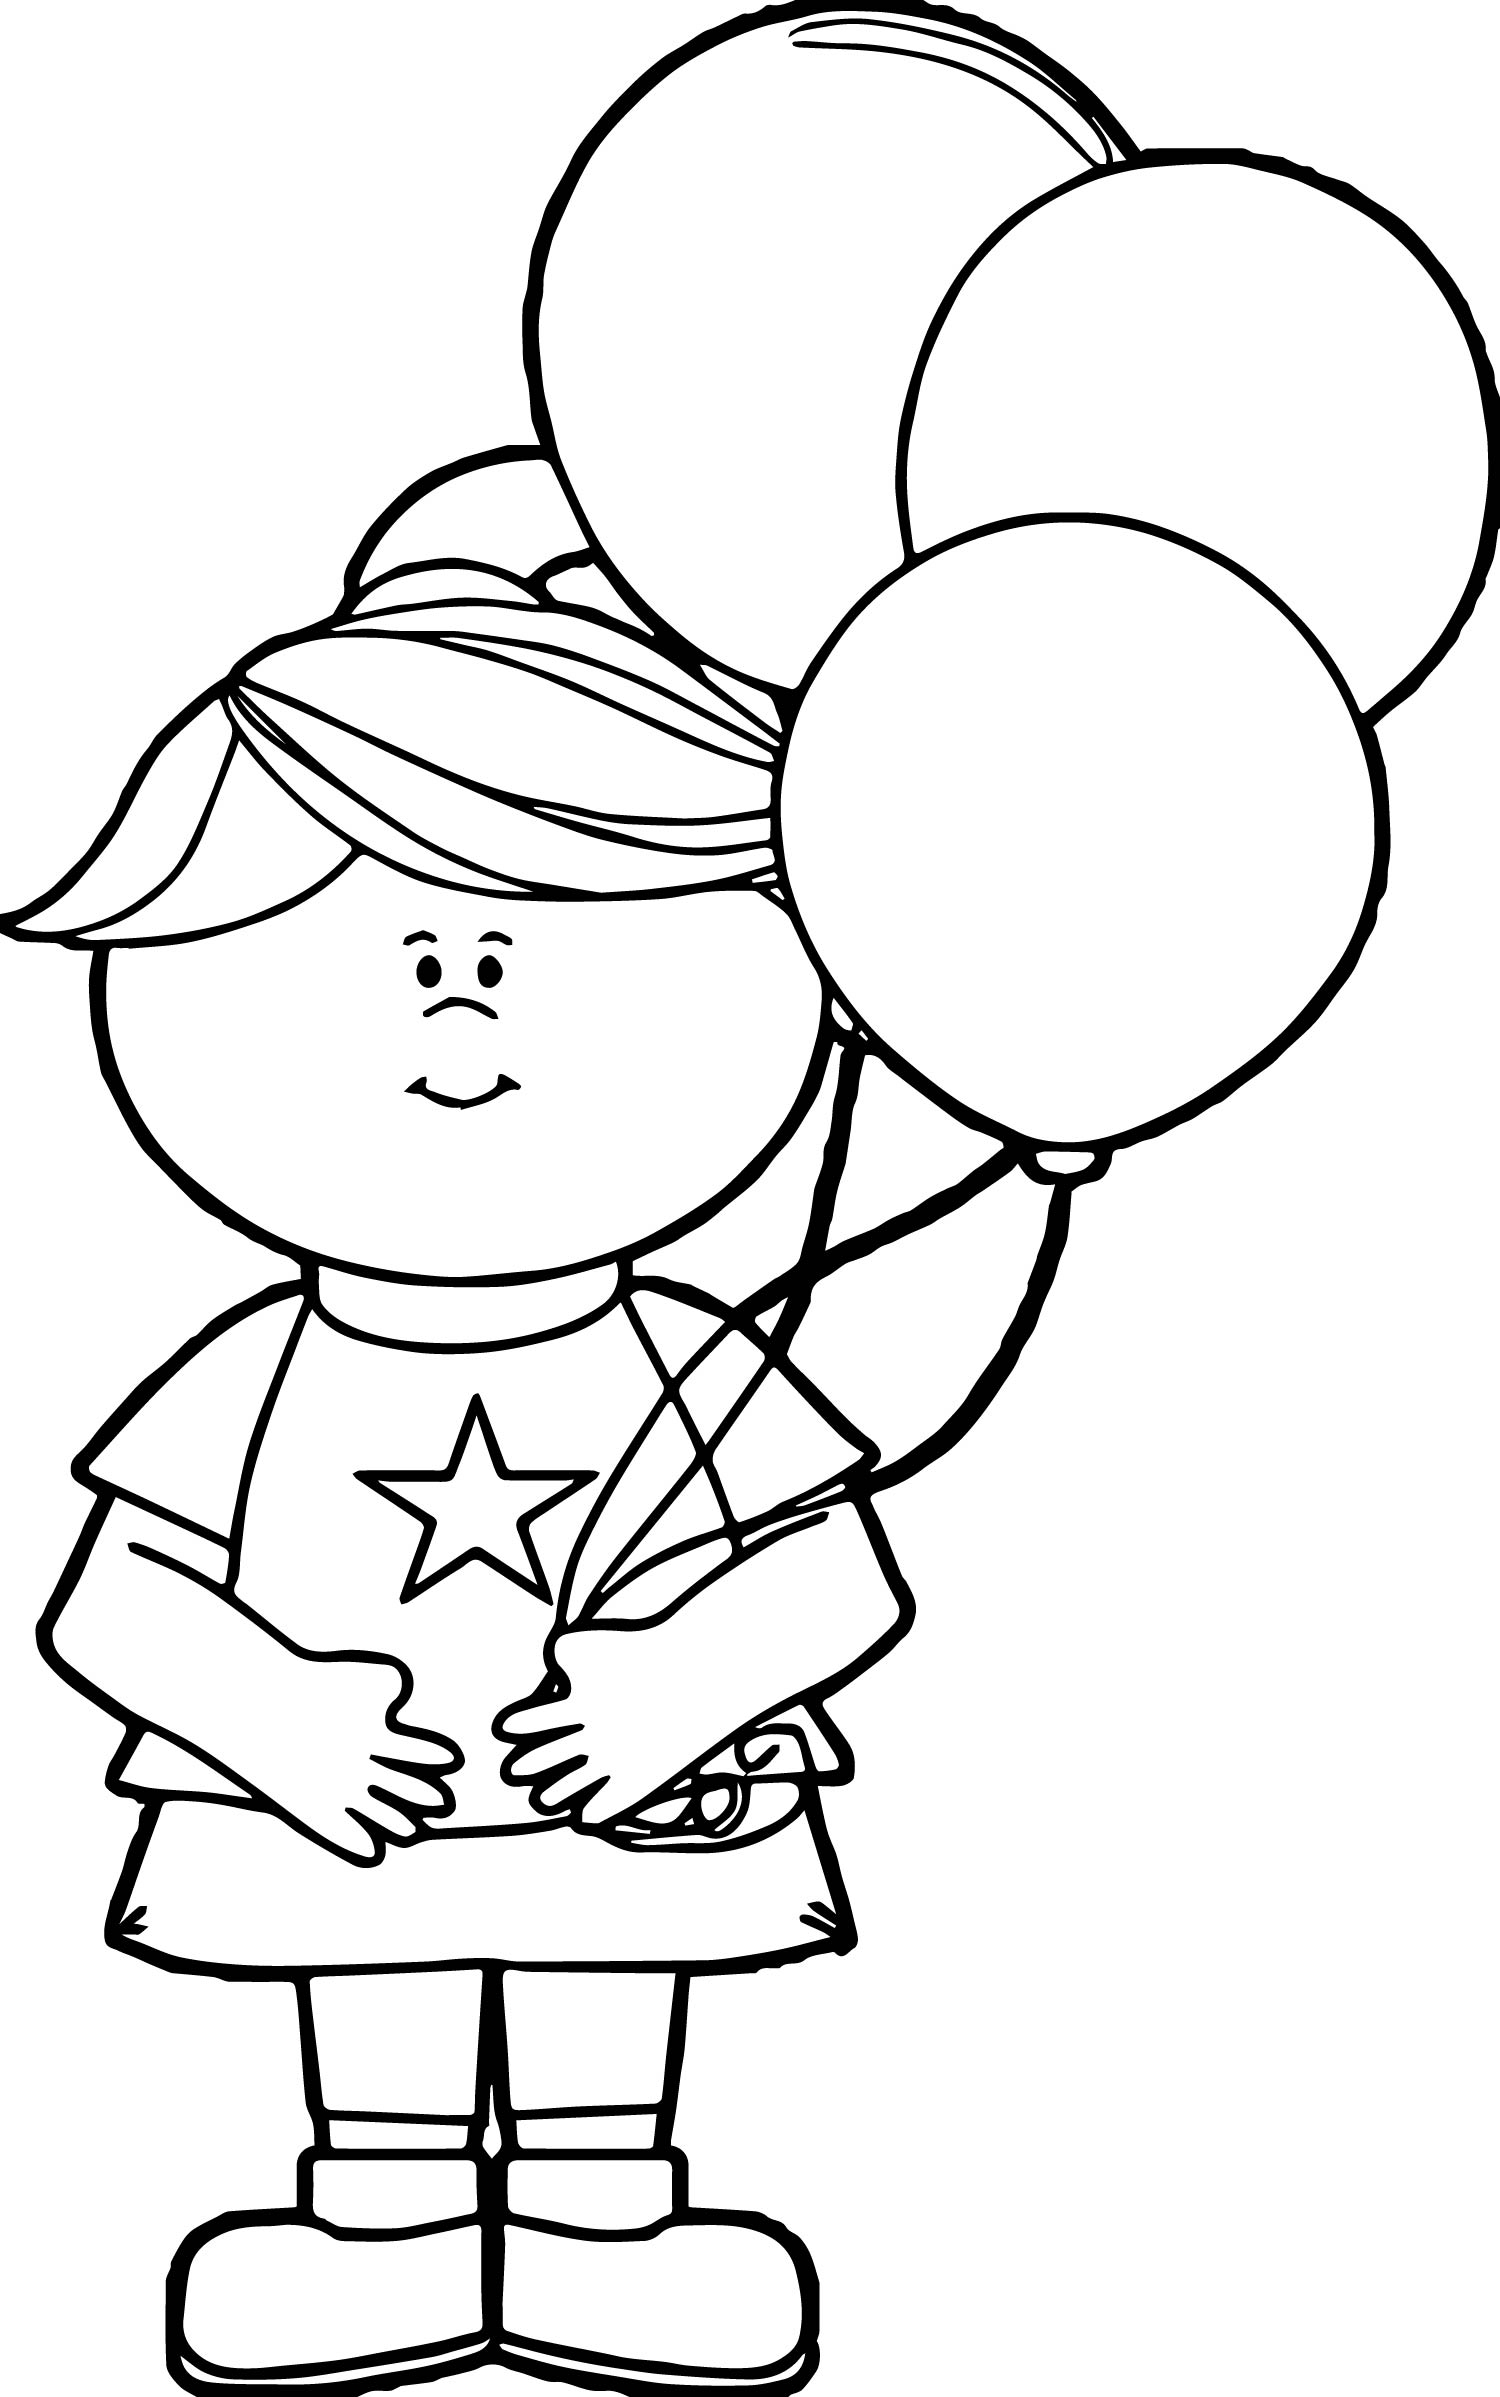 4th of july balloon coloring page wecoloringpage